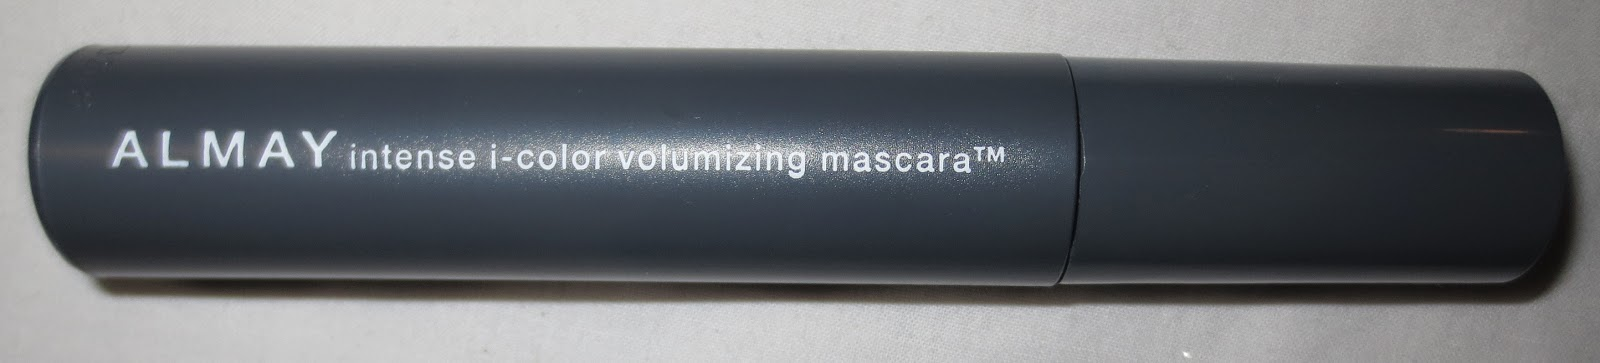 Almay Intense i-color Volumizing Mascara in Mocha